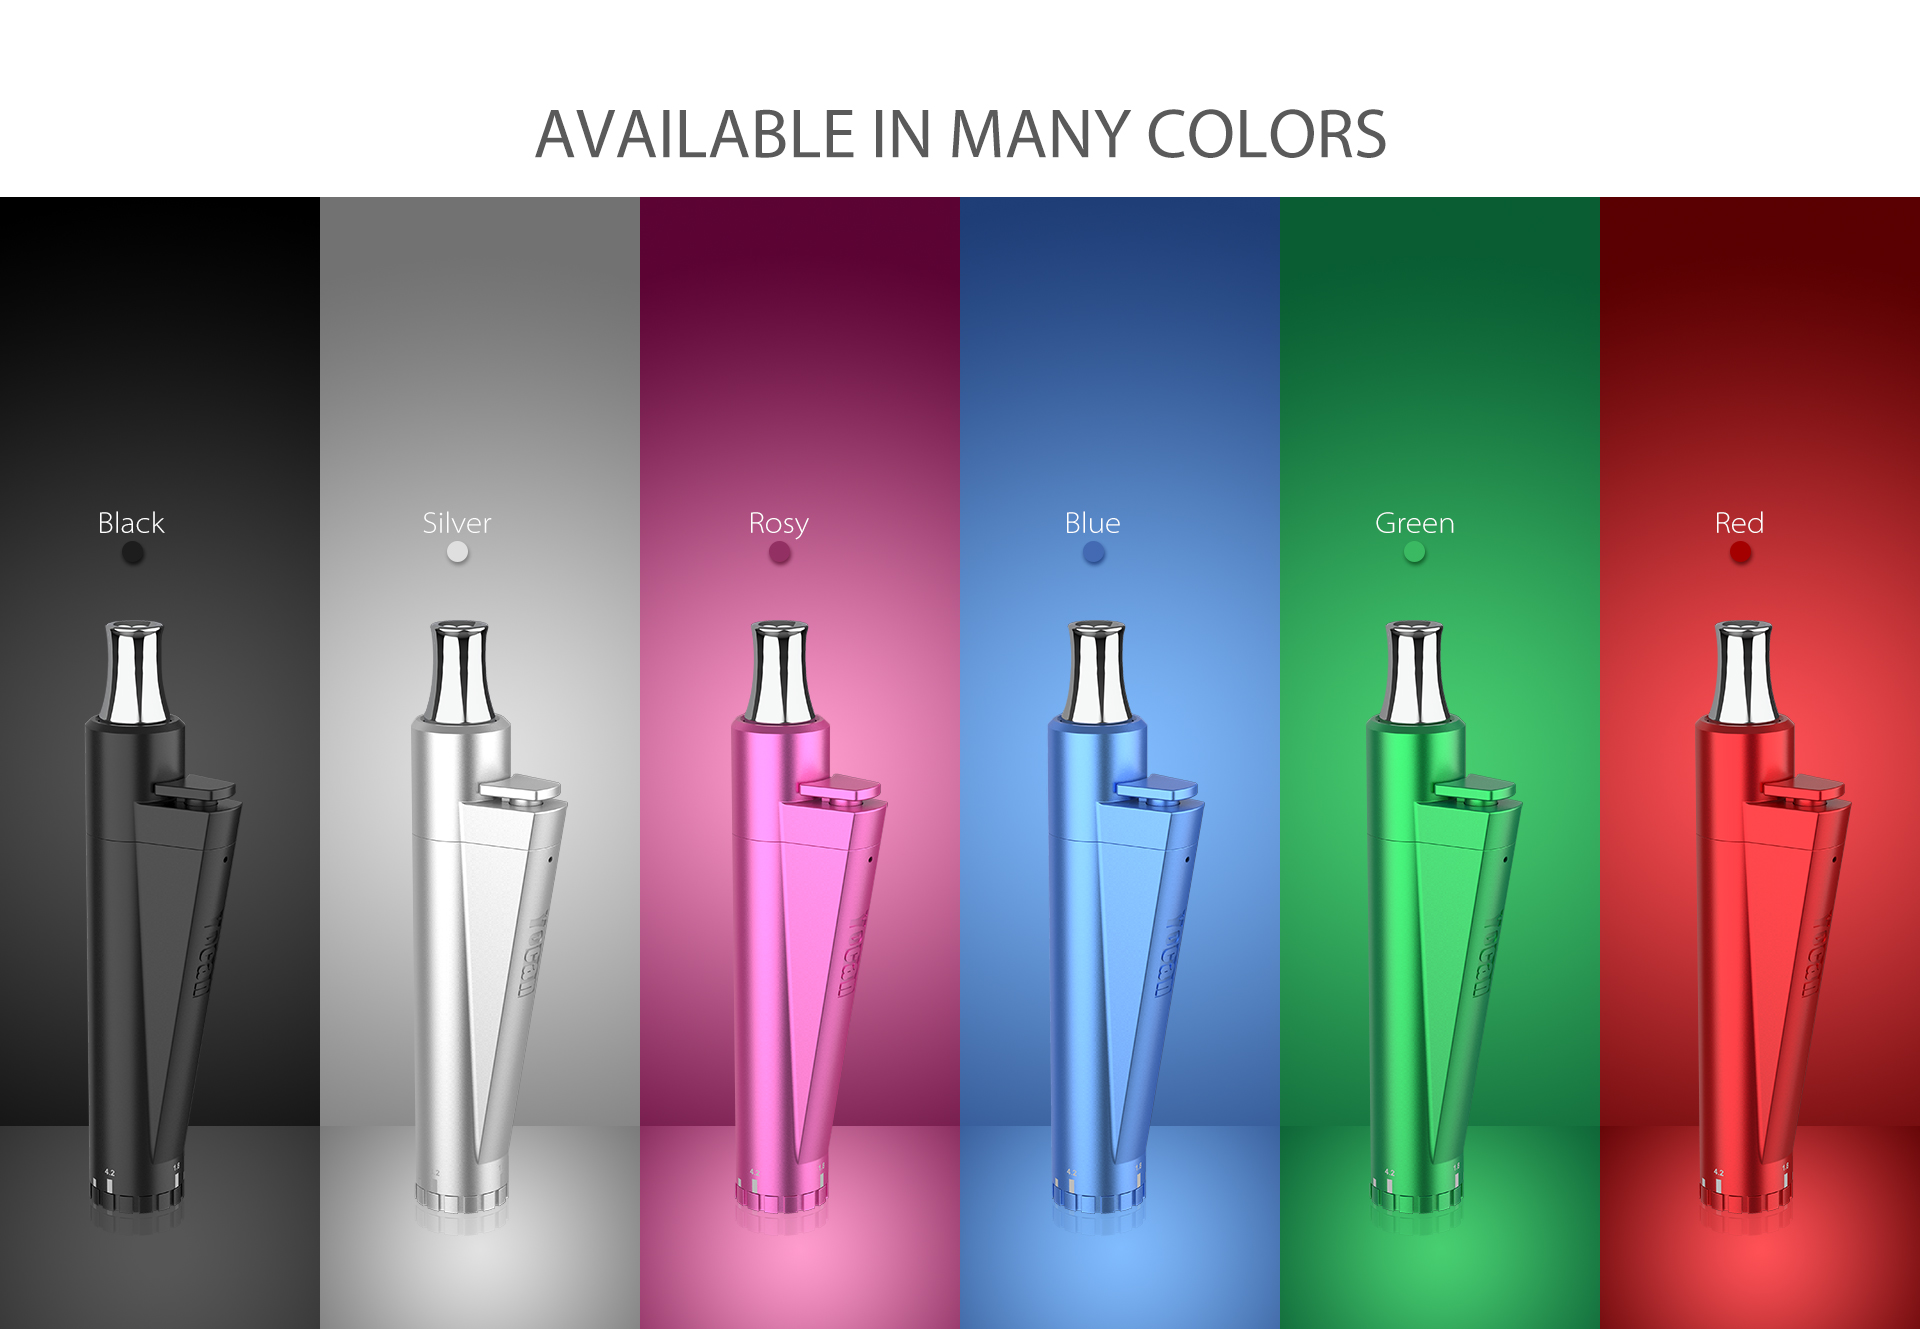 Yocan Lit Twist Concentrate Vaporizer comes with 6 colors.